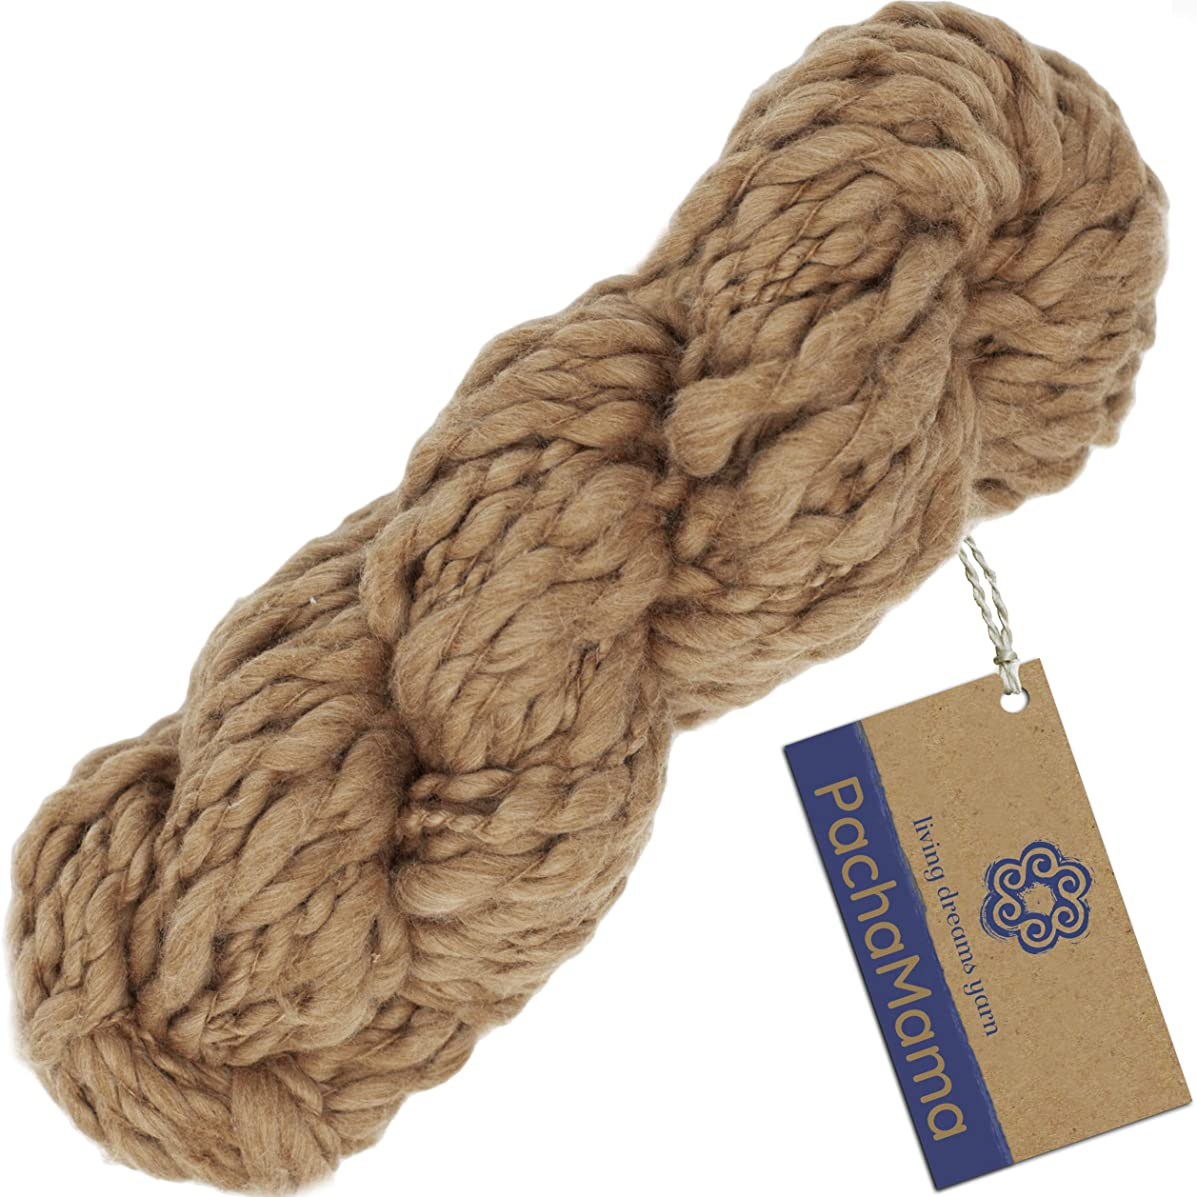 Living Dreams Yarn PachaMama - Certified Organic Color Grown Pima Cotton Yarn. Cruelty Free & Responsibly Sourced. Color: Adobe